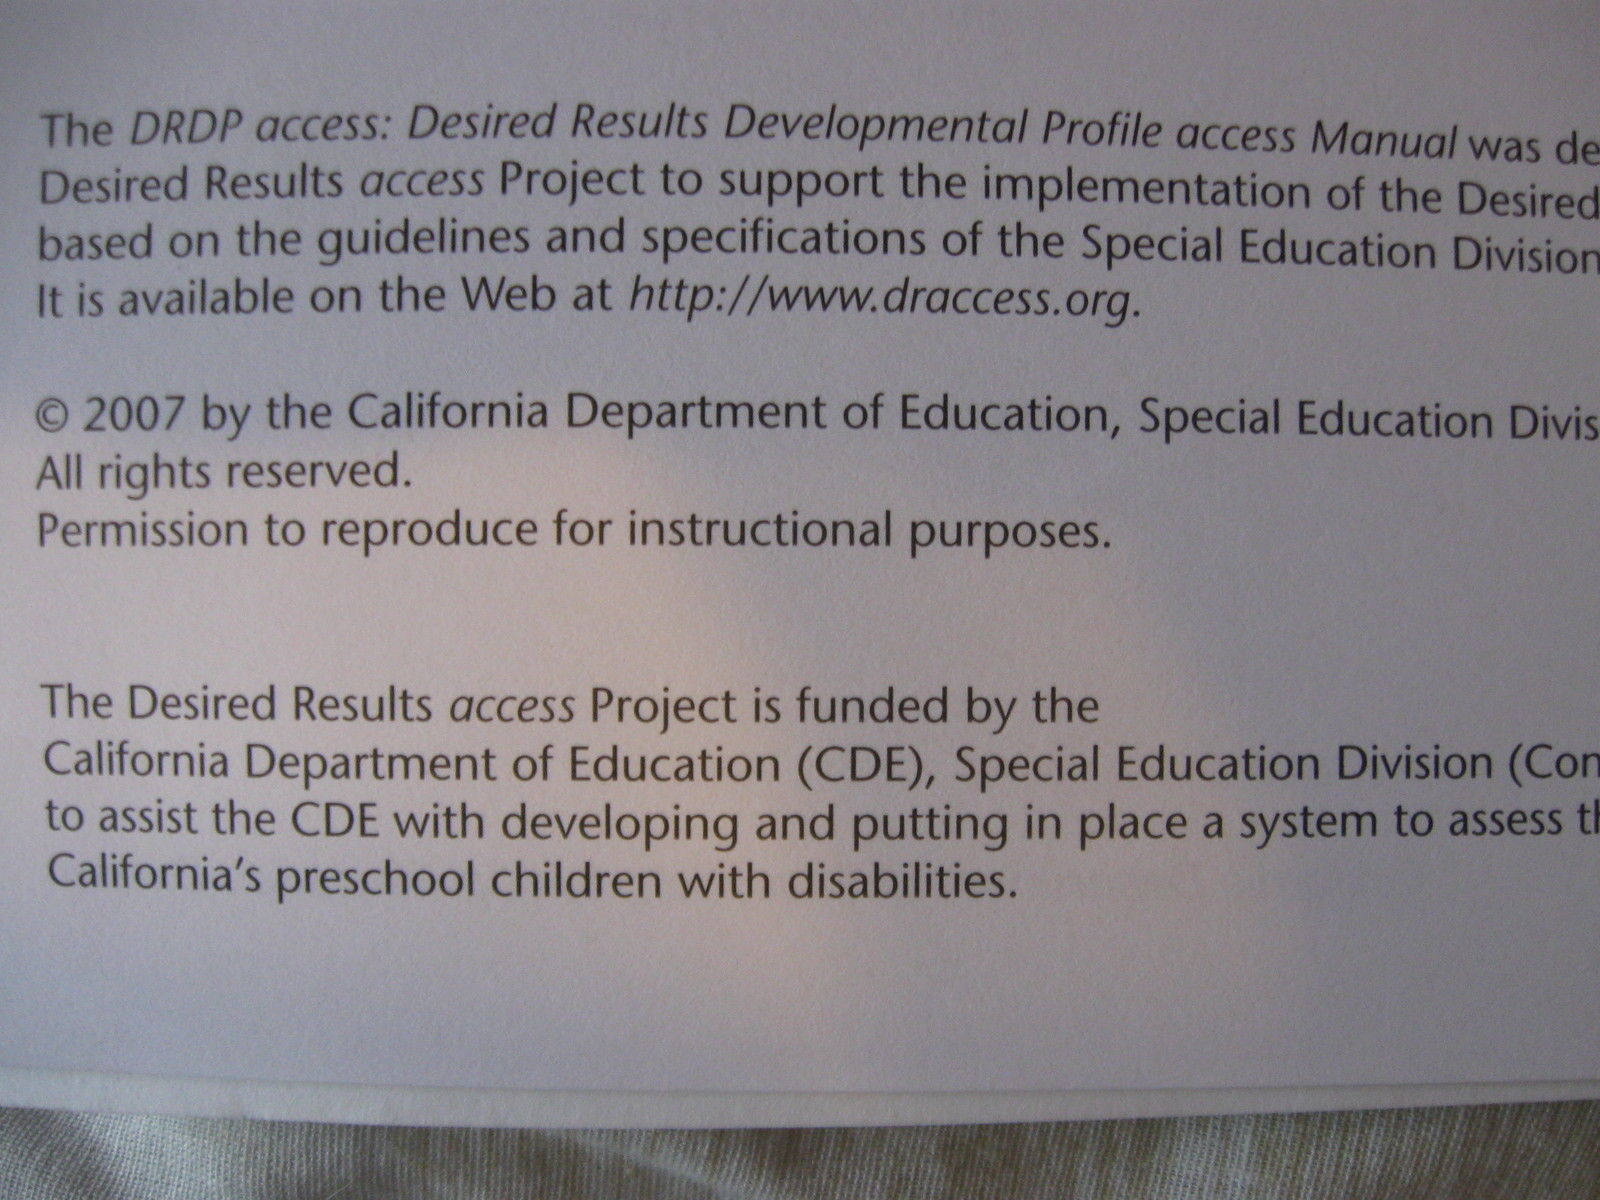 DRDP Desired Results Developmental Profile Access Manual Ca Dept of Ed CL2-11 |